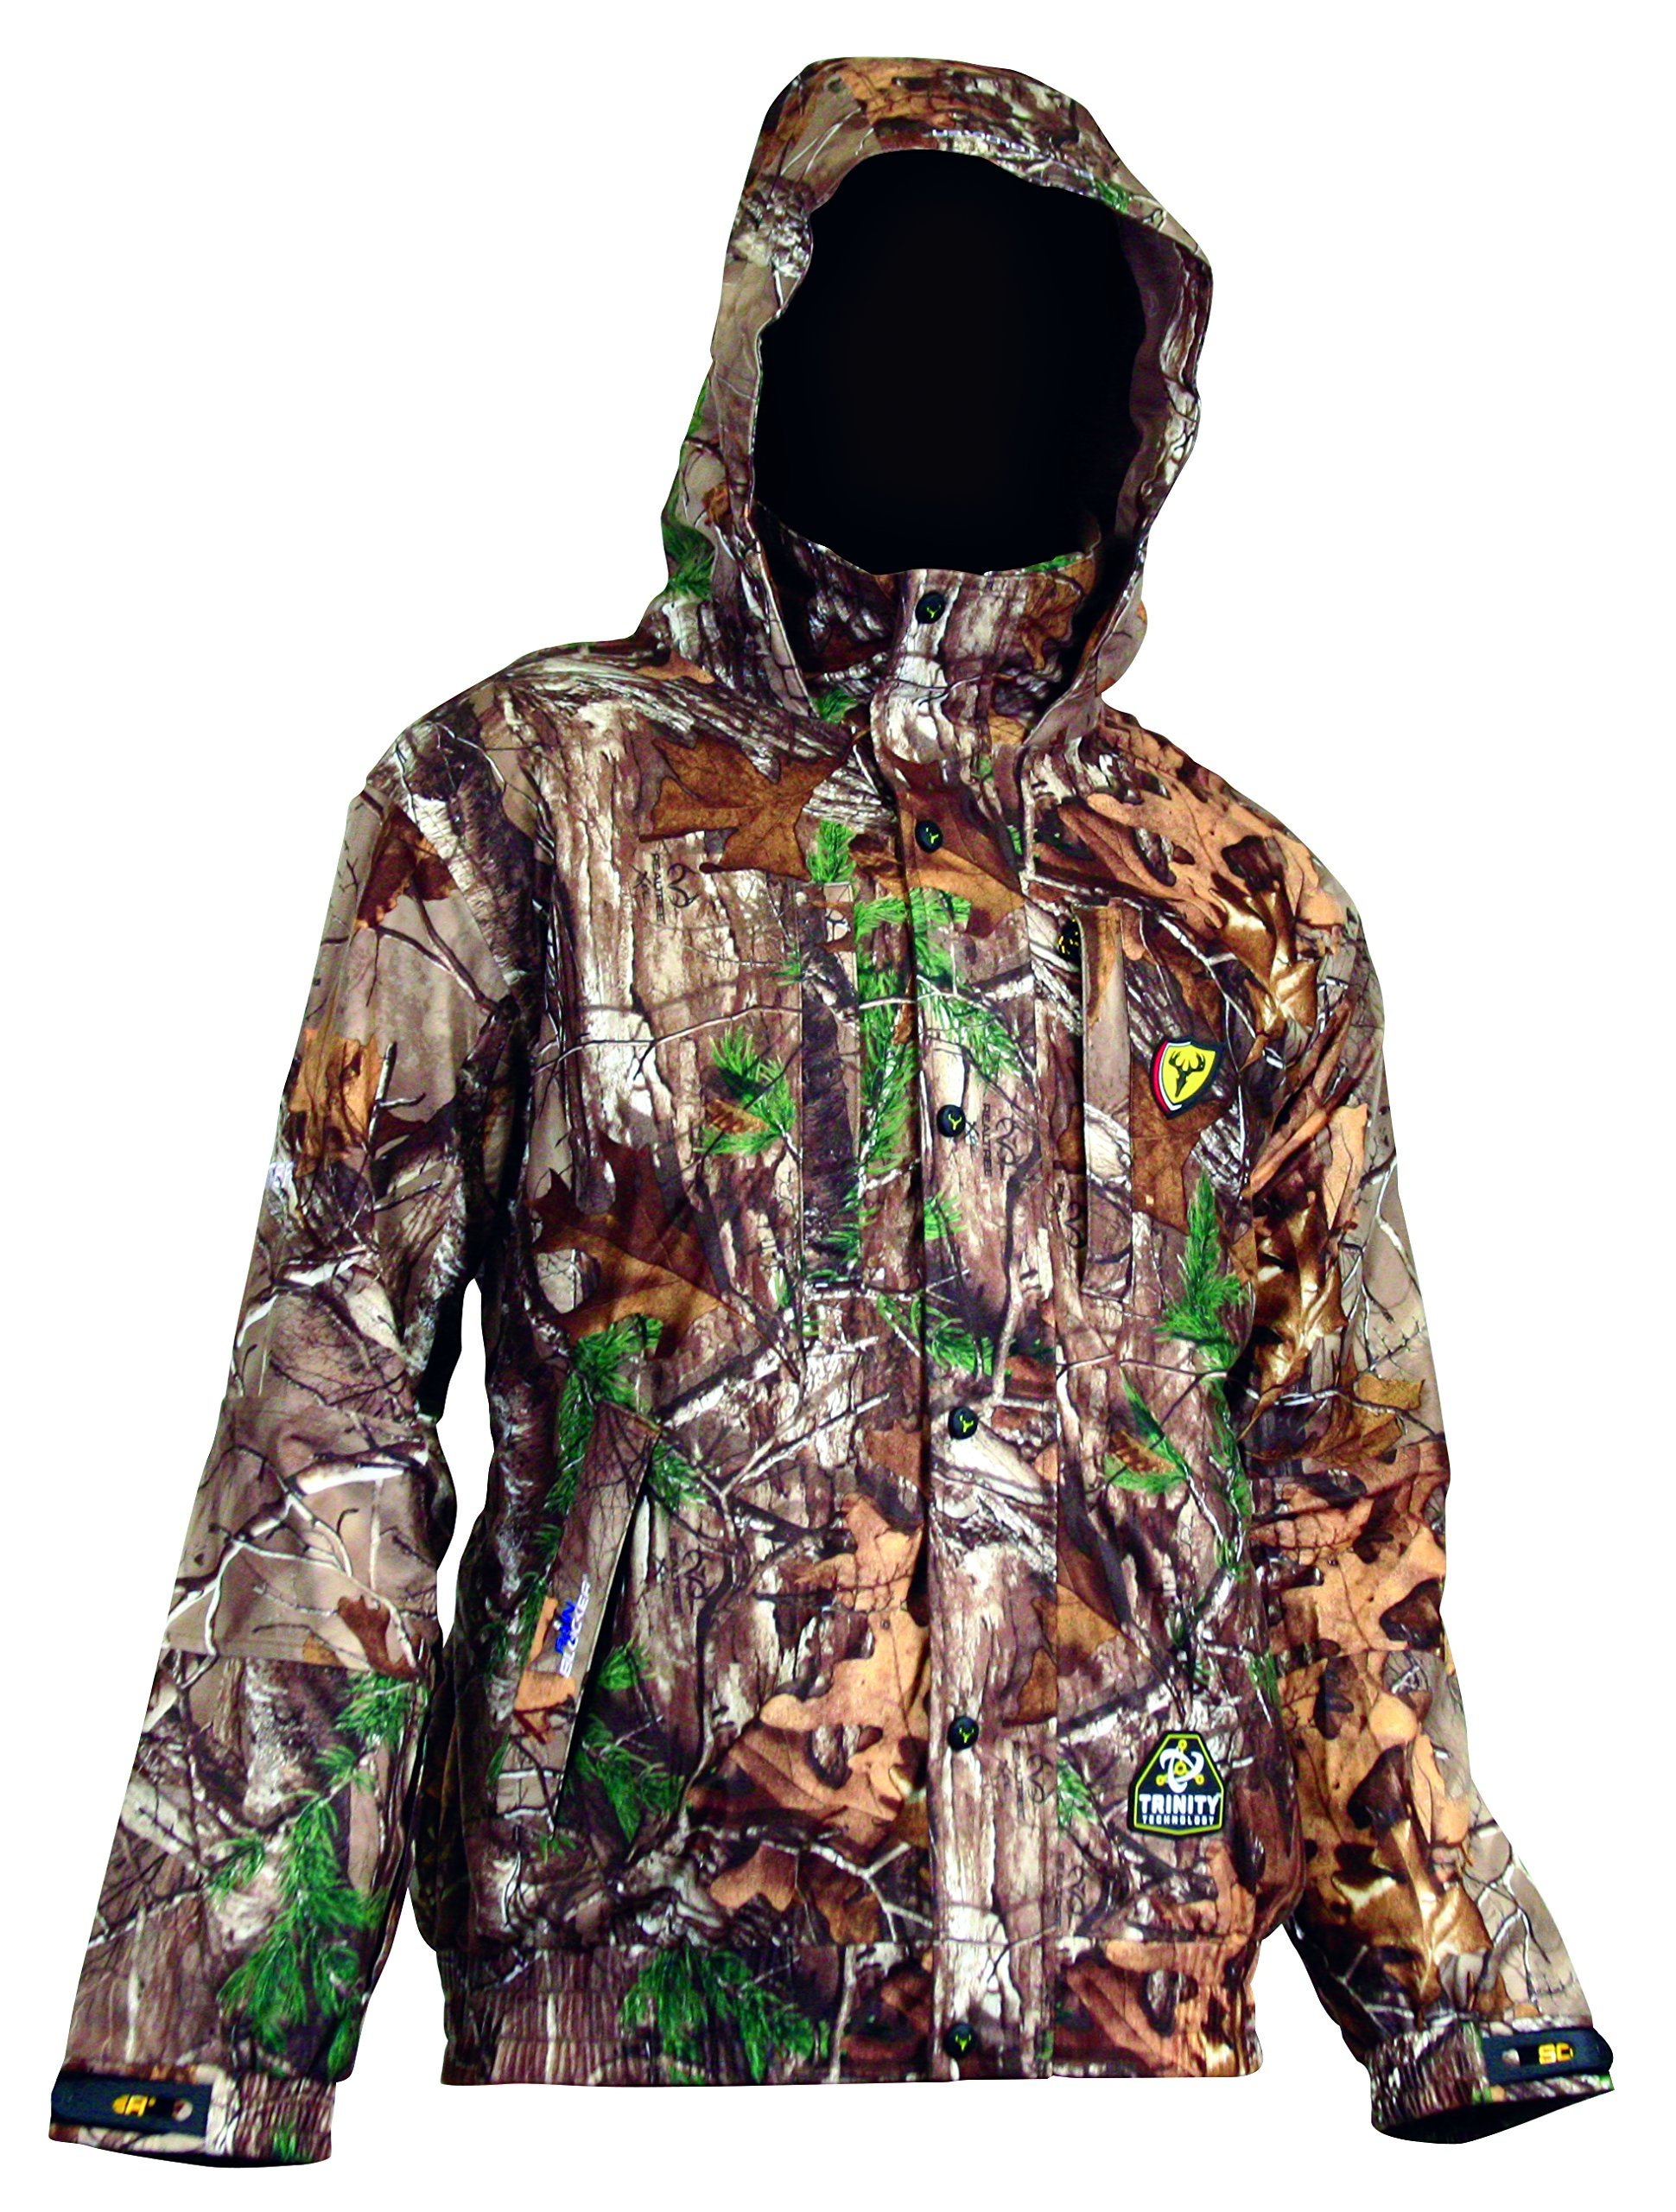 ScentBlocker Men's Hunting Outfitter Jacket- 2X-Large